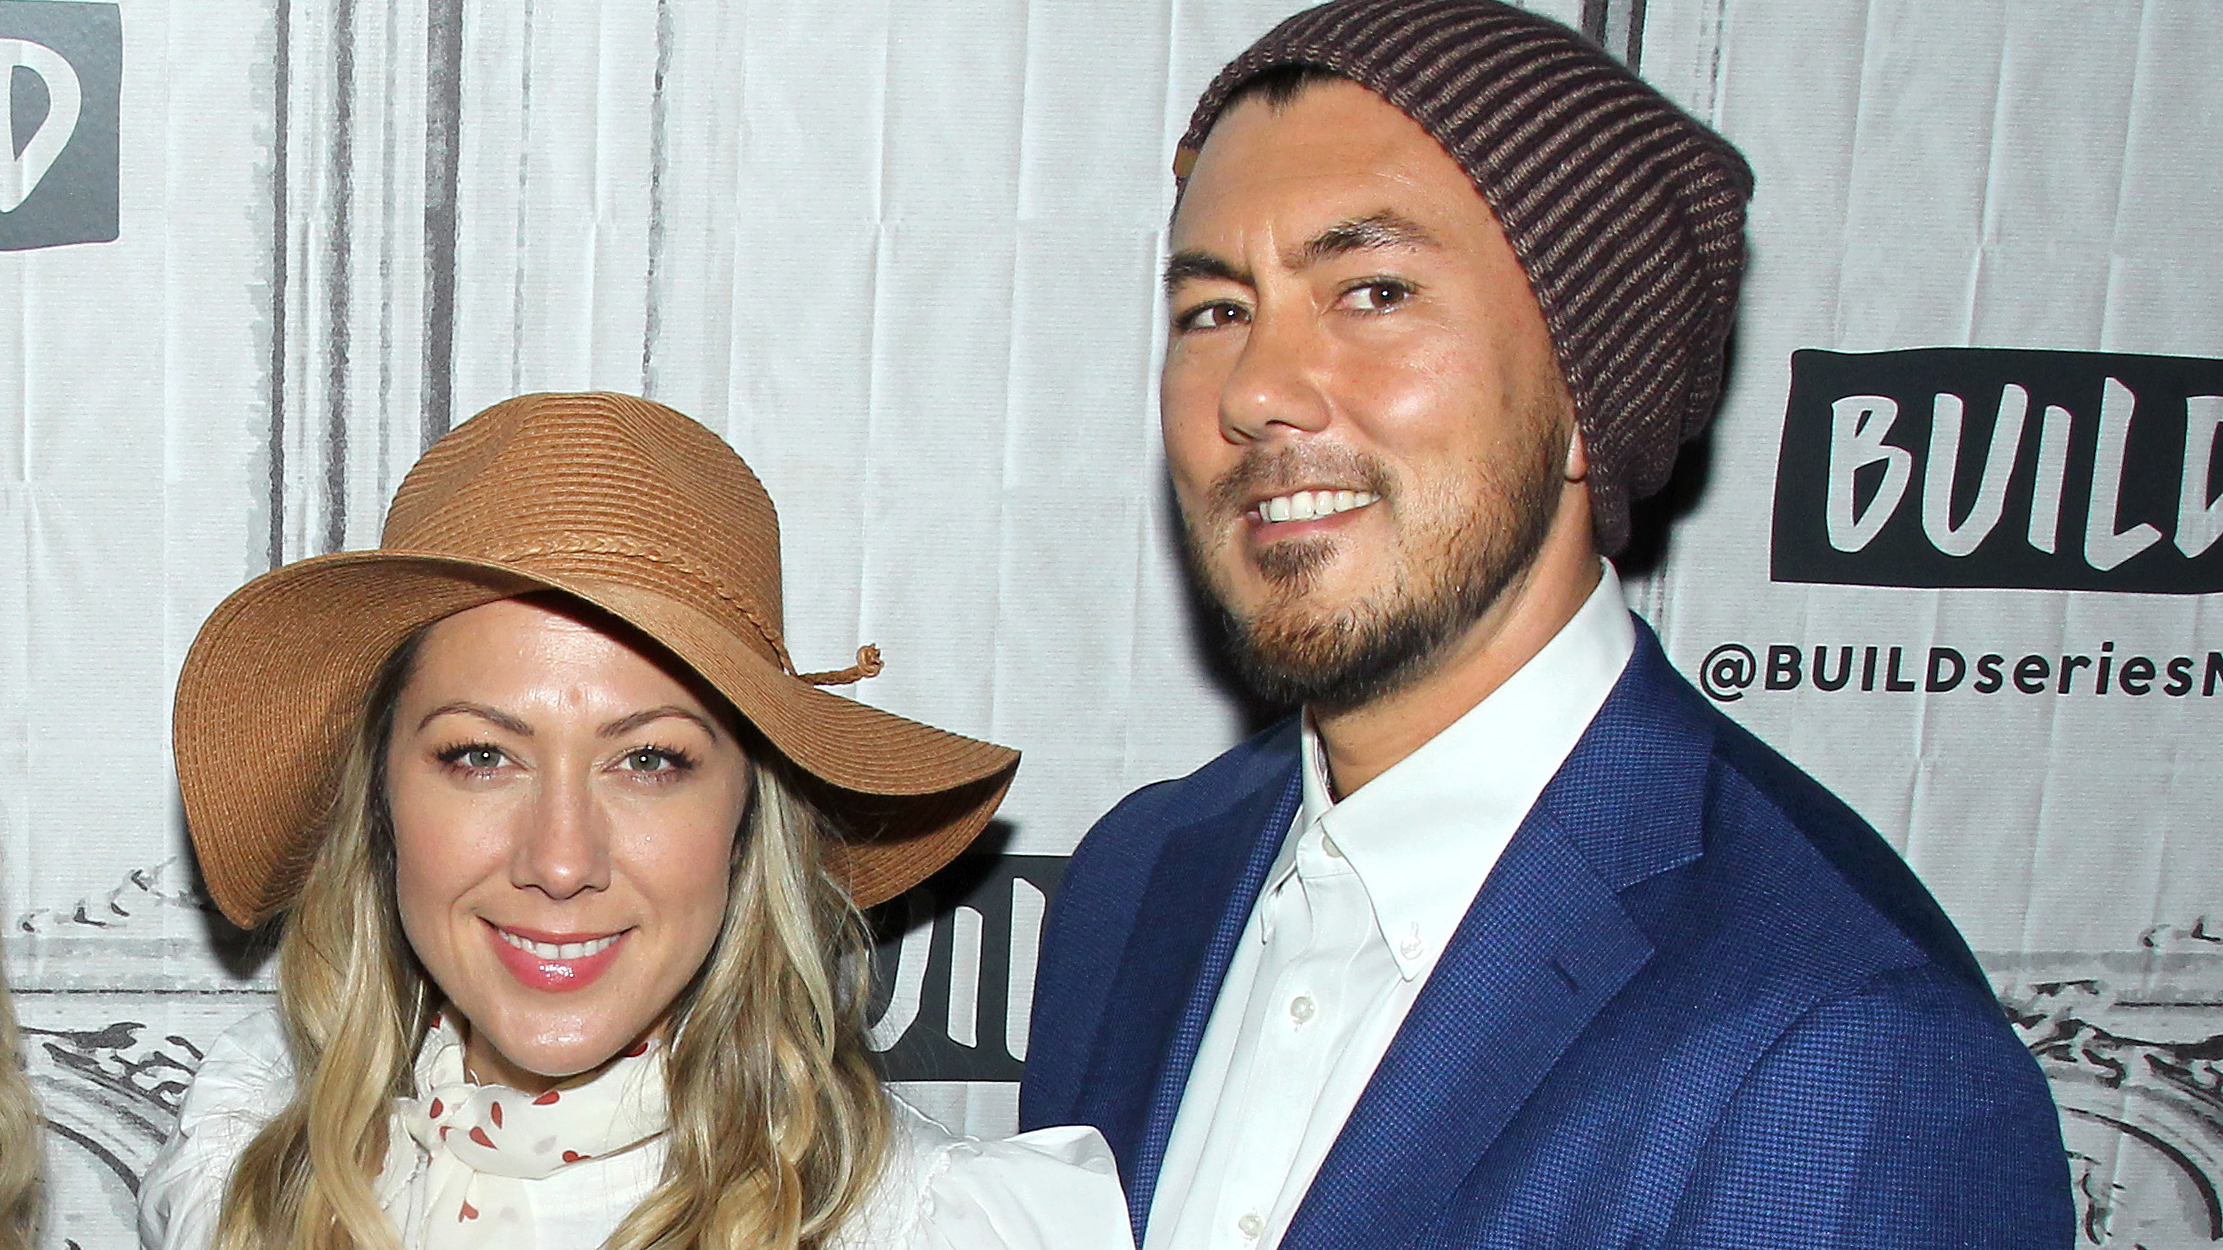 Country stars Colbie Caillat, Justin Young of Gone West, split, end engagement after 10 years together - fox